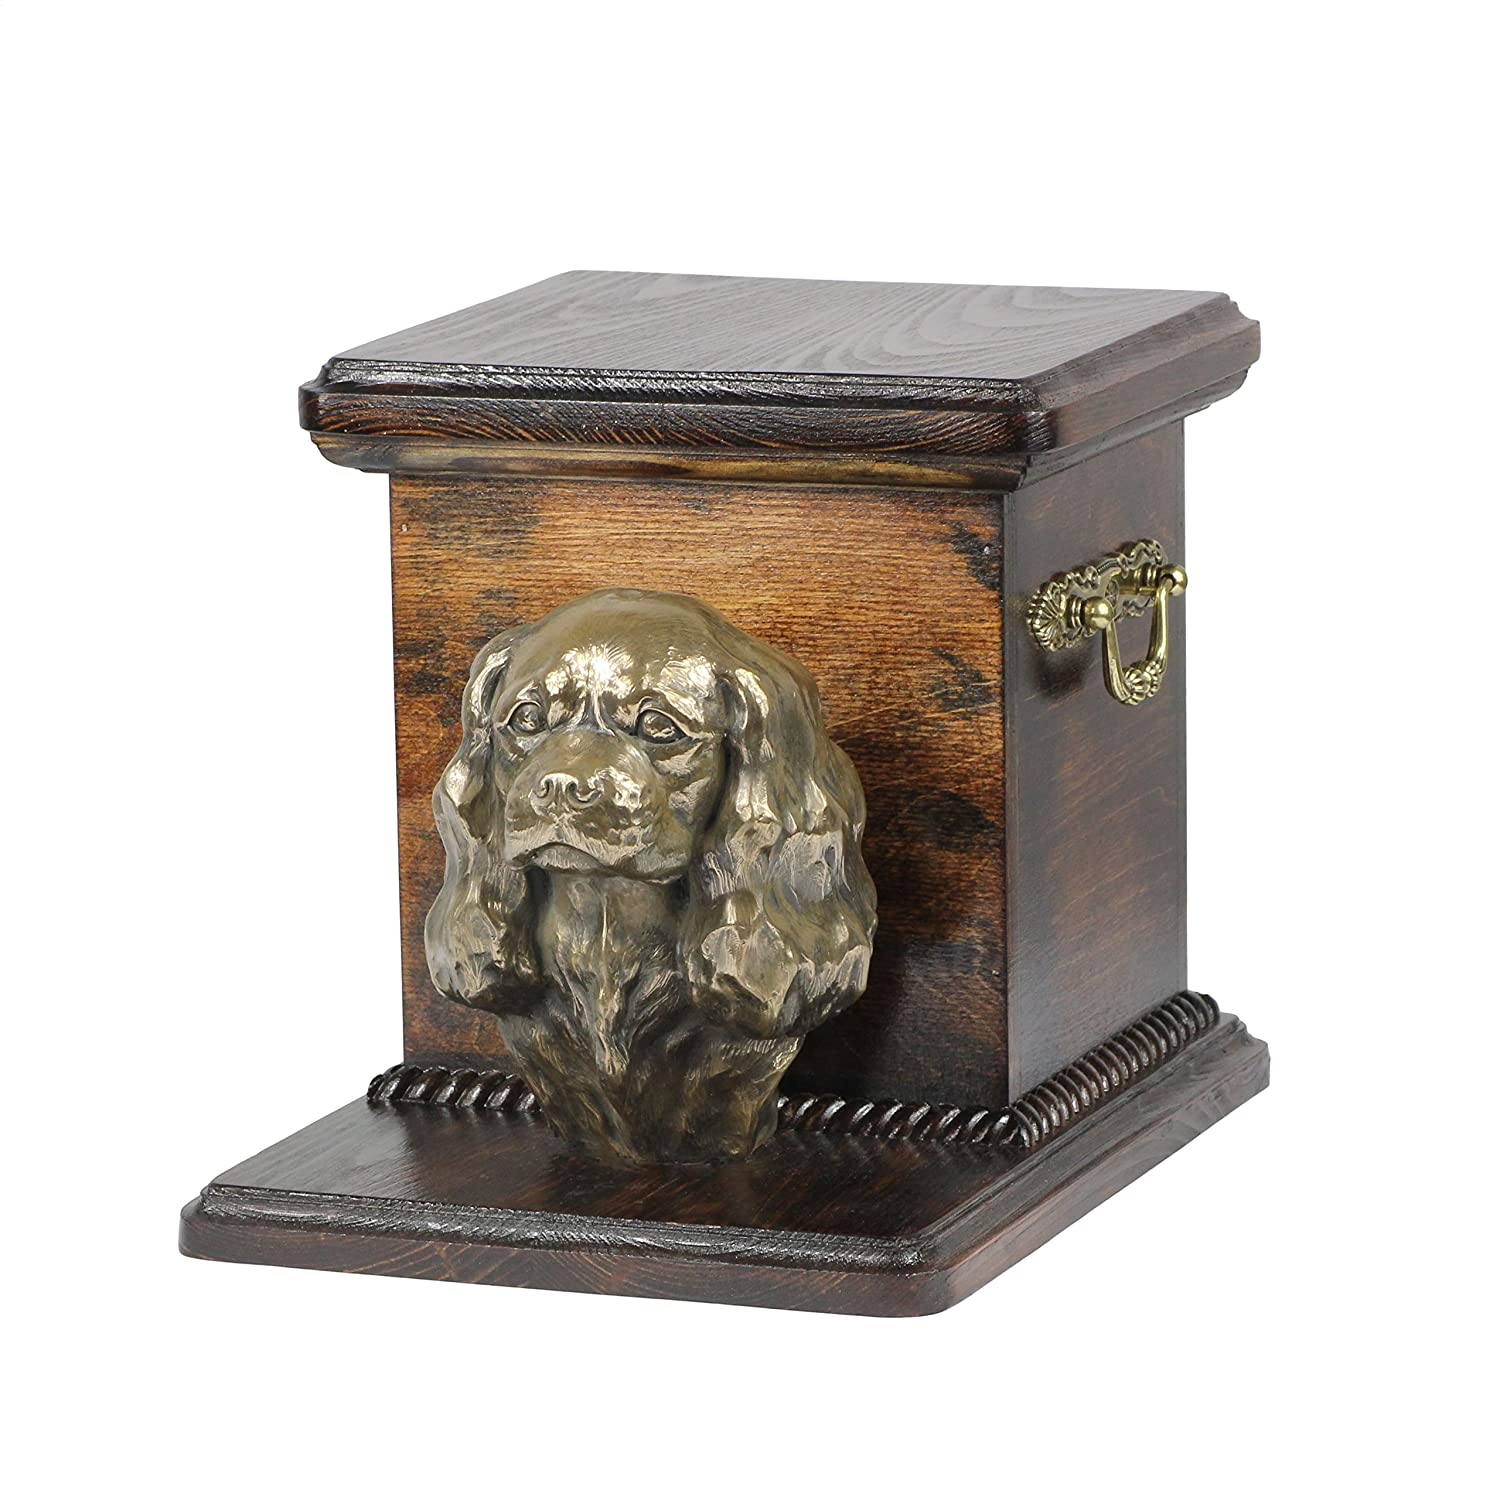 King Charles Spaniel, memorial, urn for dog's ashes, with dog statue, ArtDog